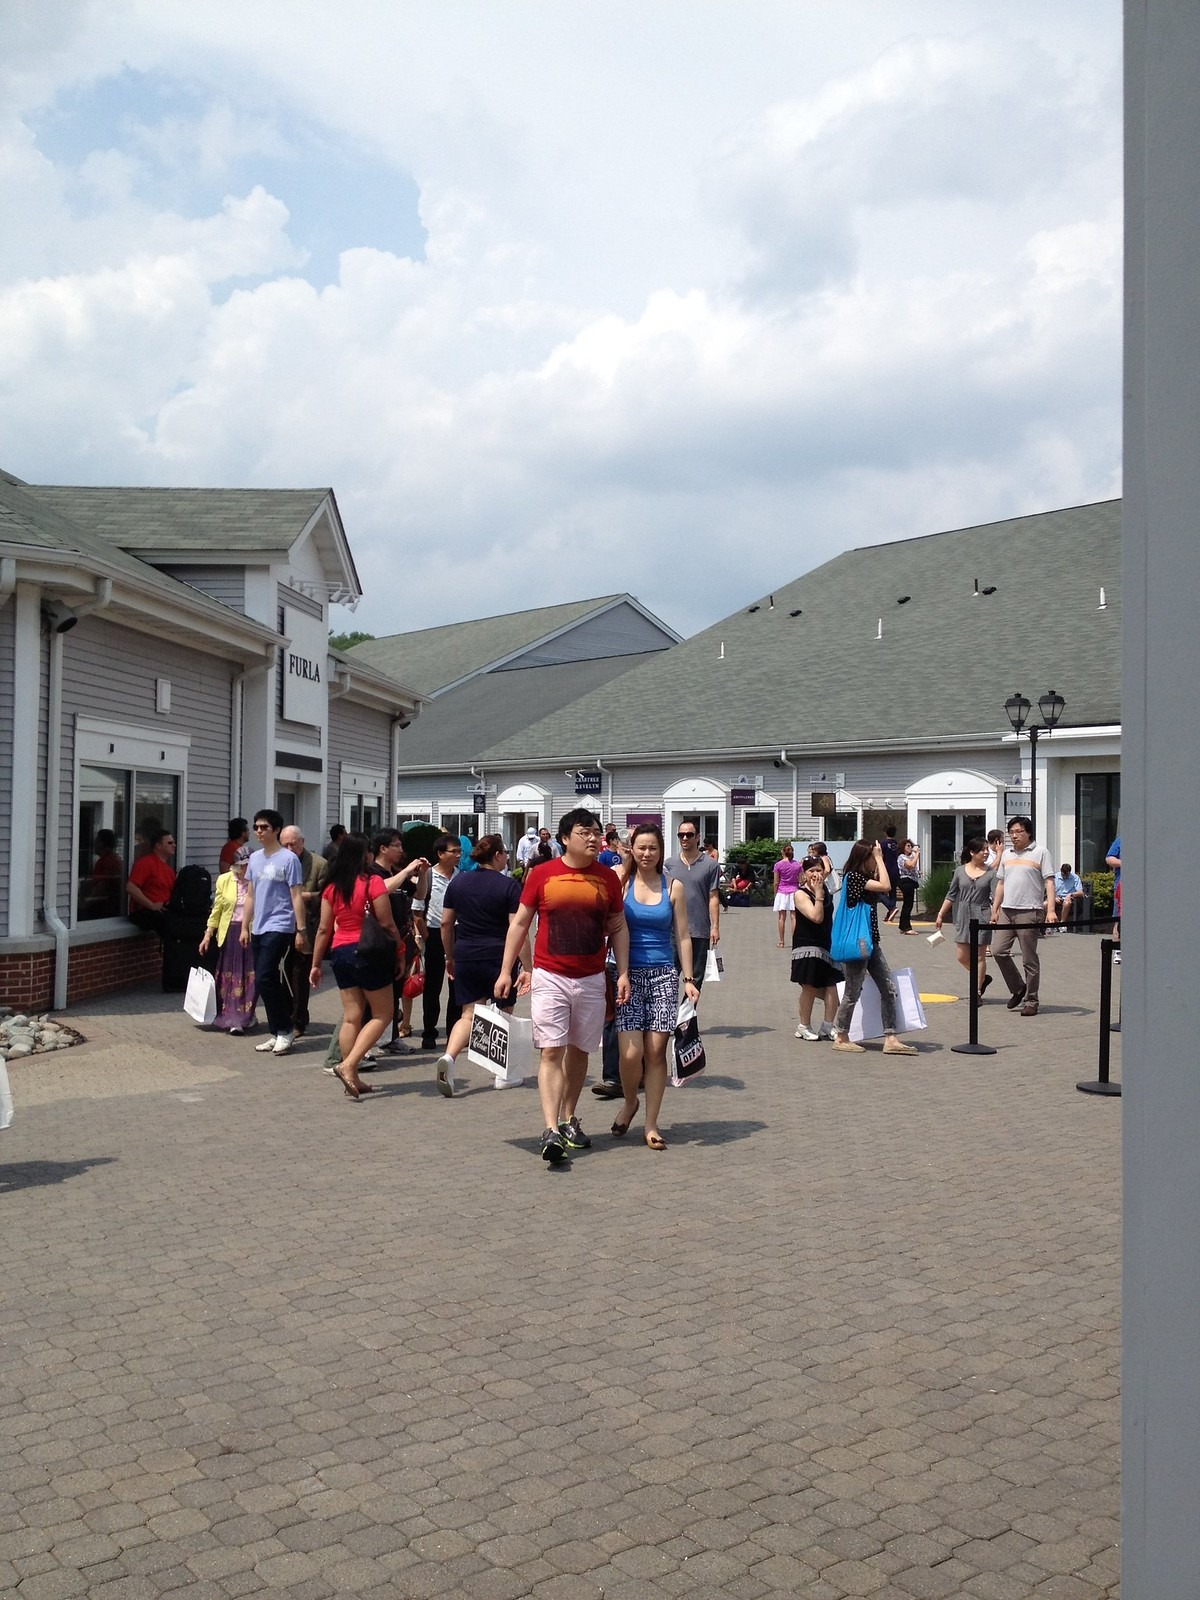 Woodbury (NY) United States  City pictures : Woodbury Common Premium Outlets – New York State | Tripomatic